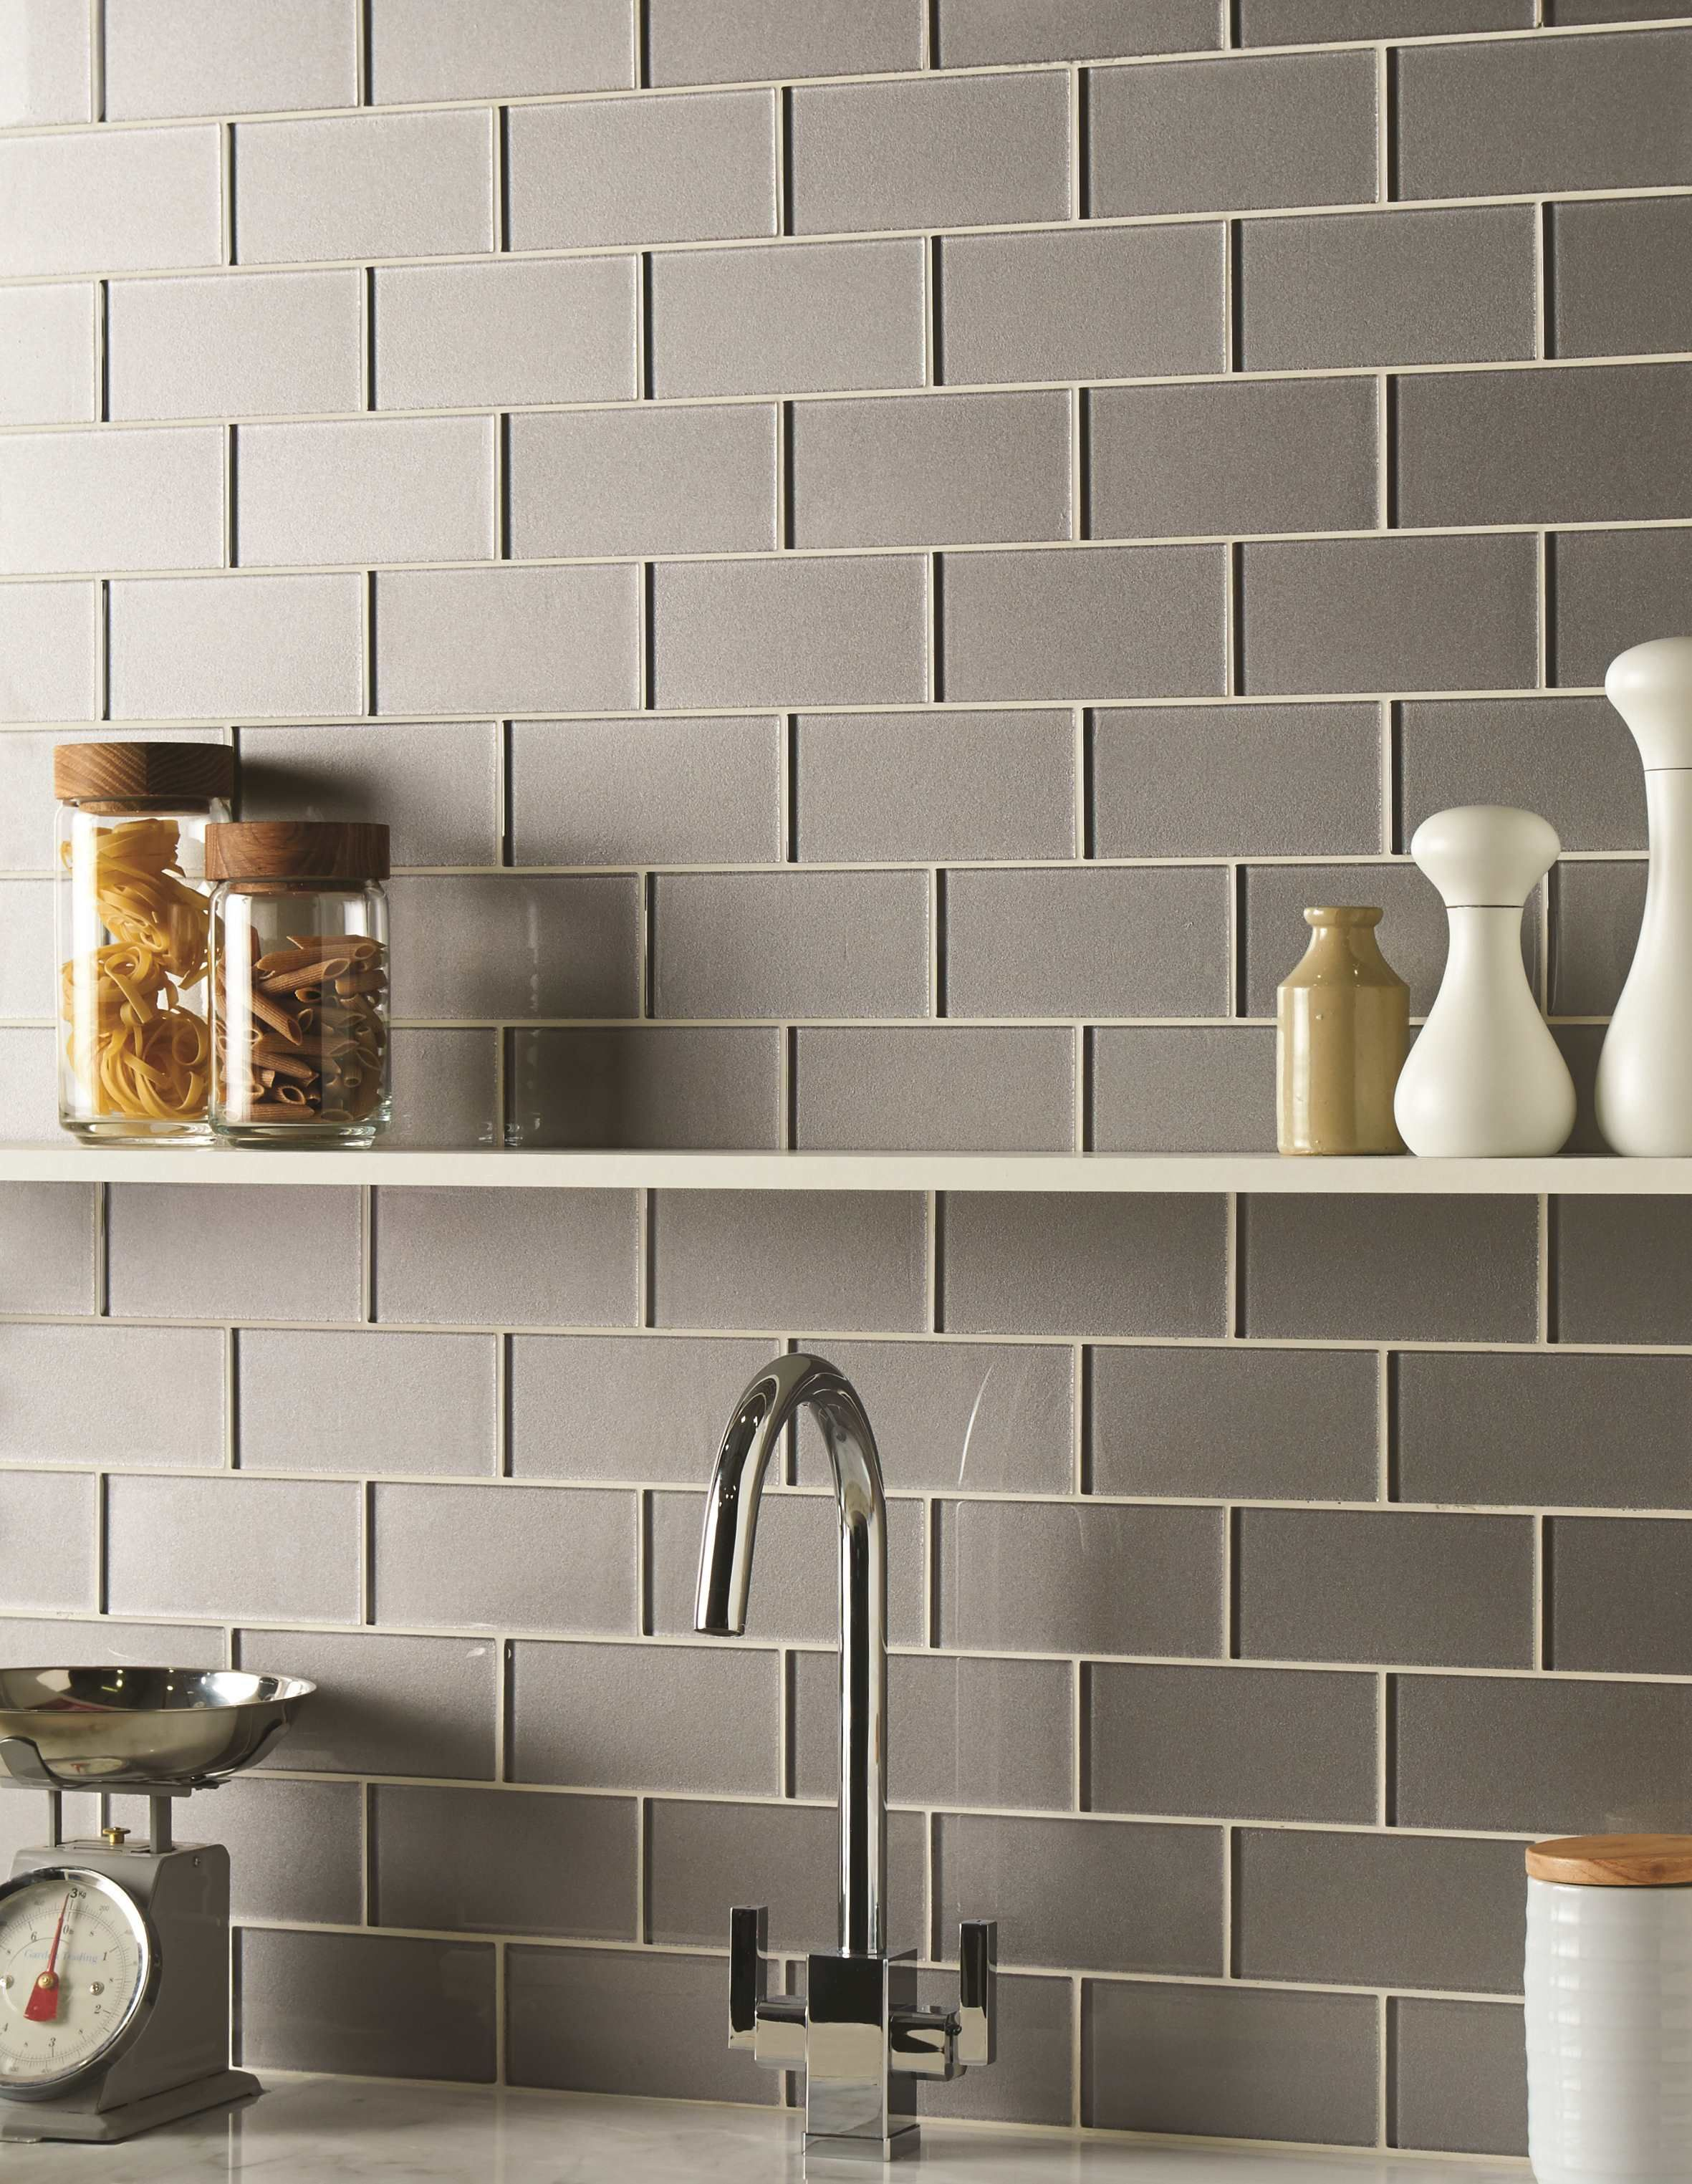 Erebos metallic glass brick tiles are a modern twist on a classic